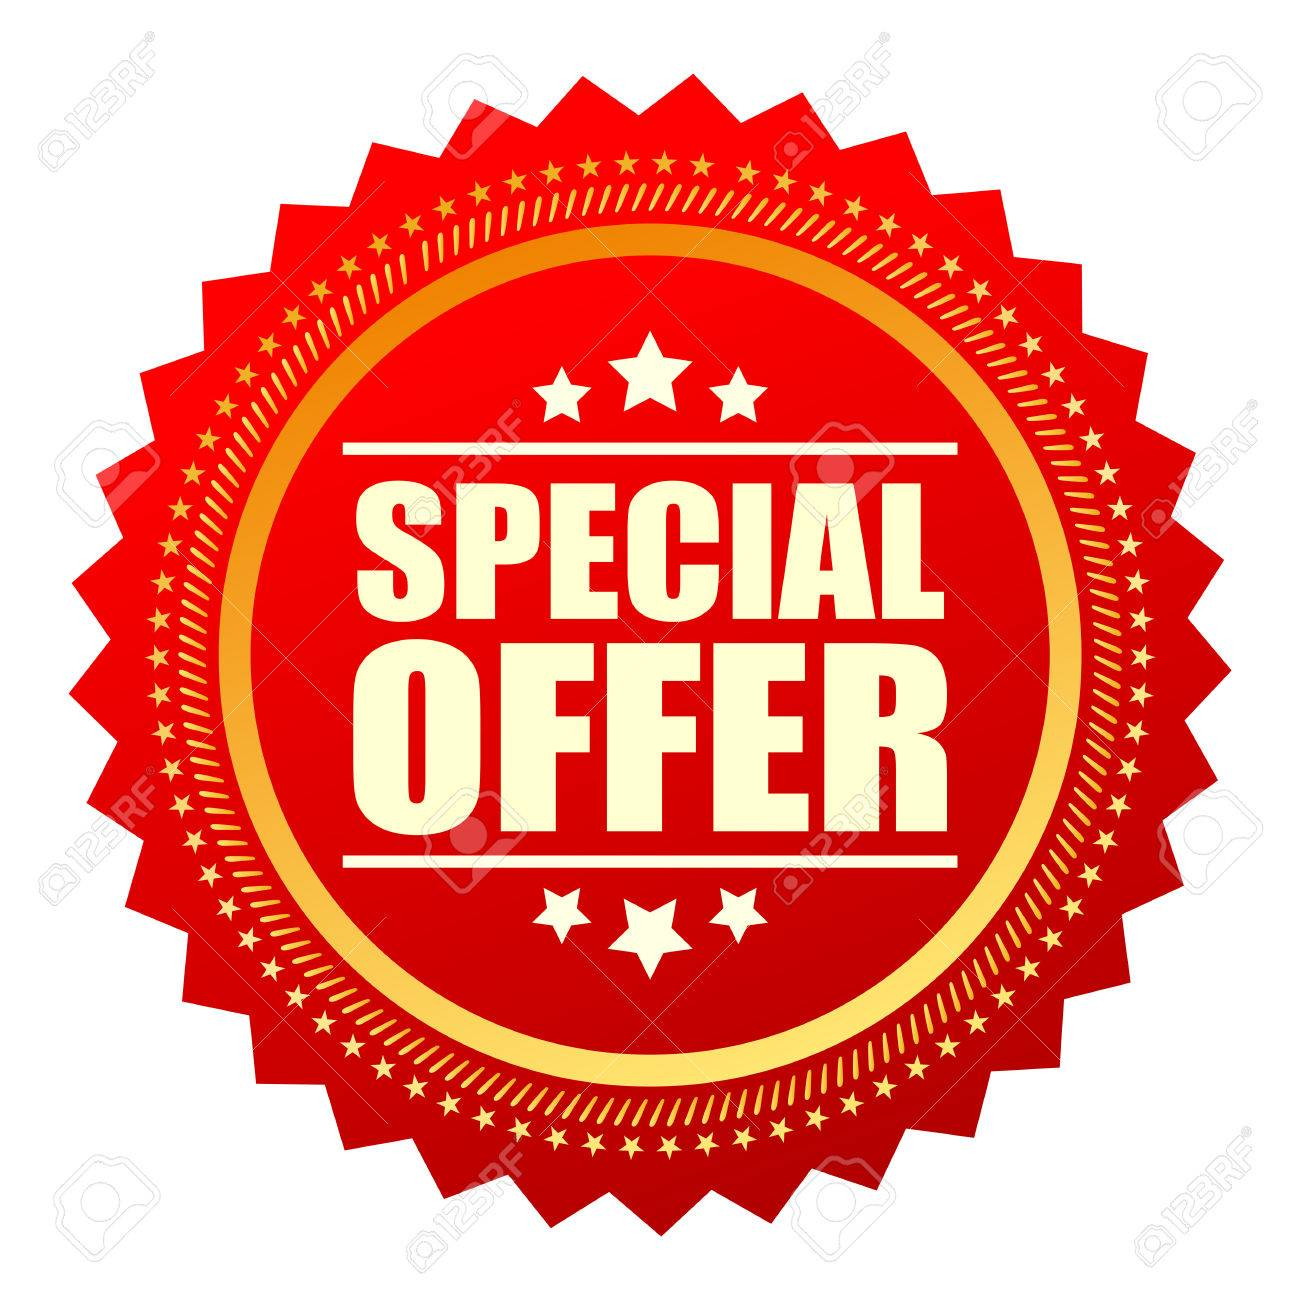 Special offer red star icon - 59113161